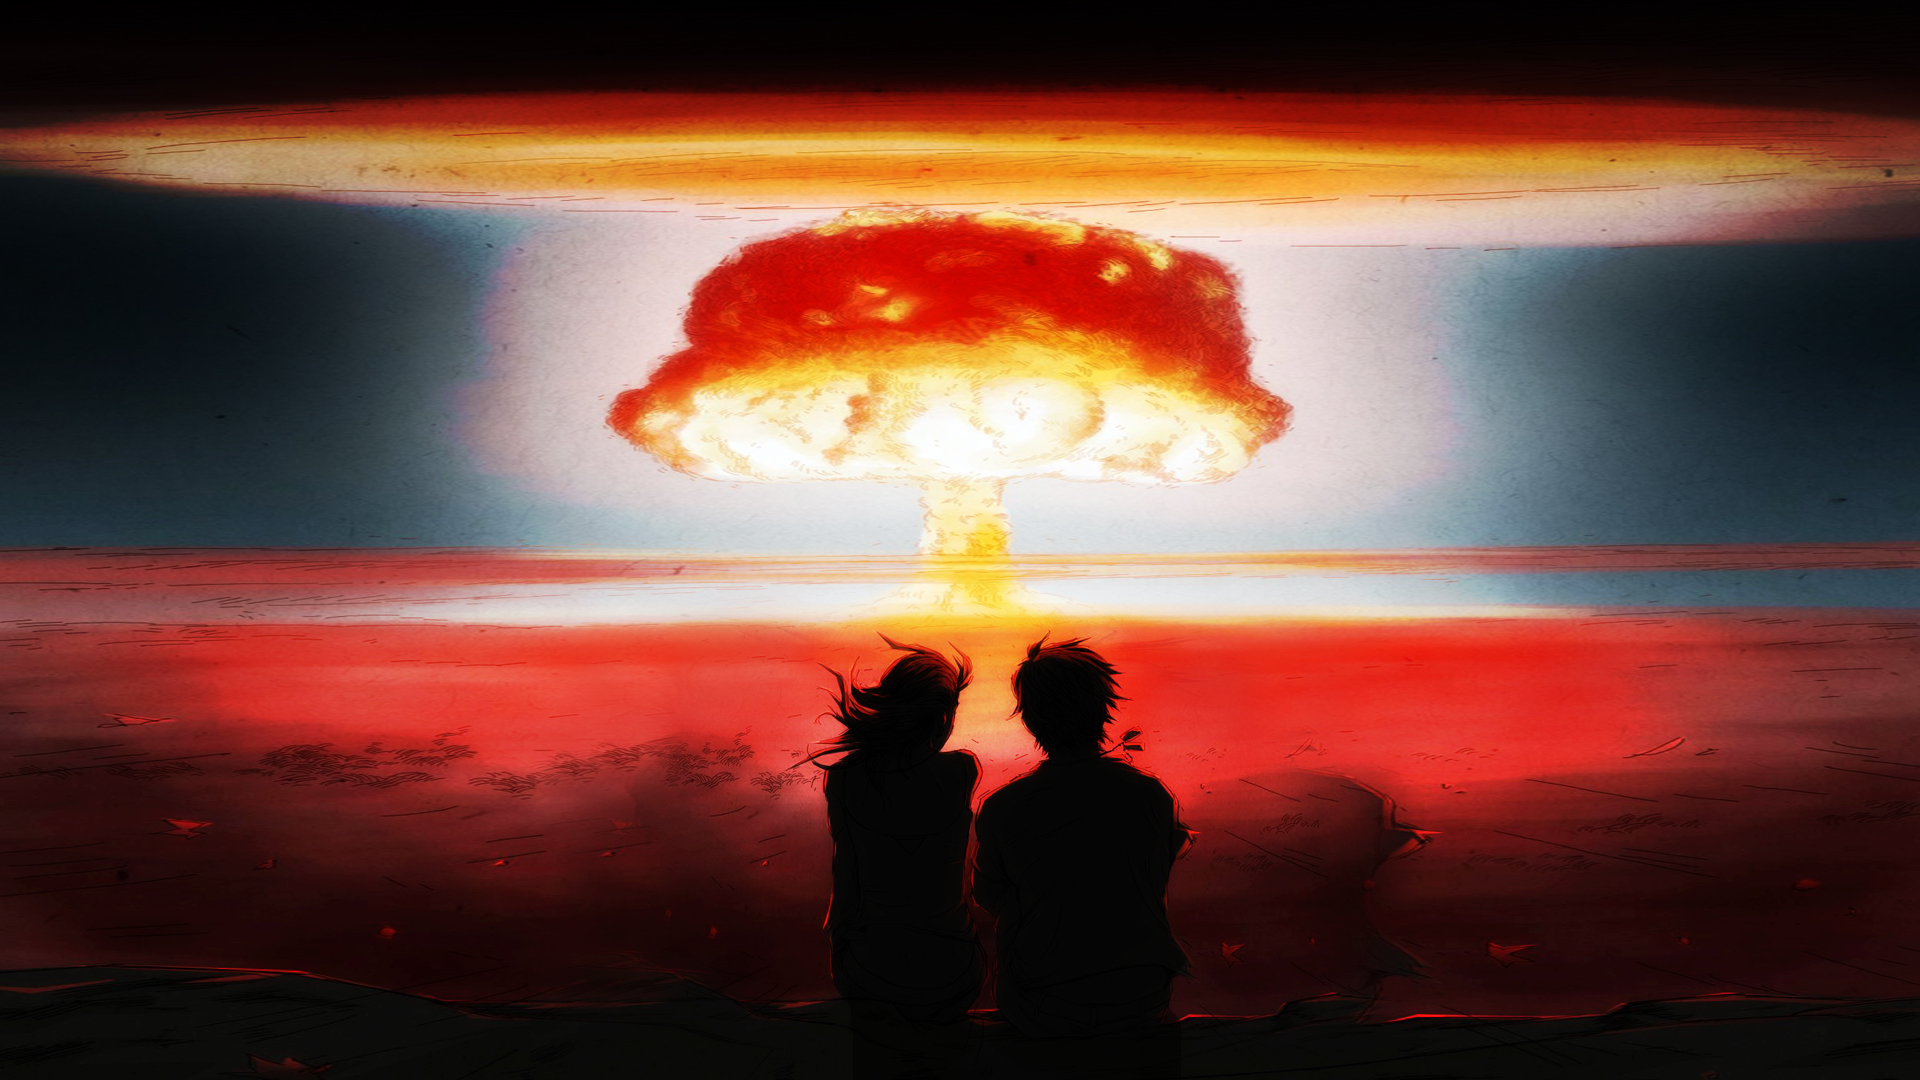 nuclear bomb explosion images